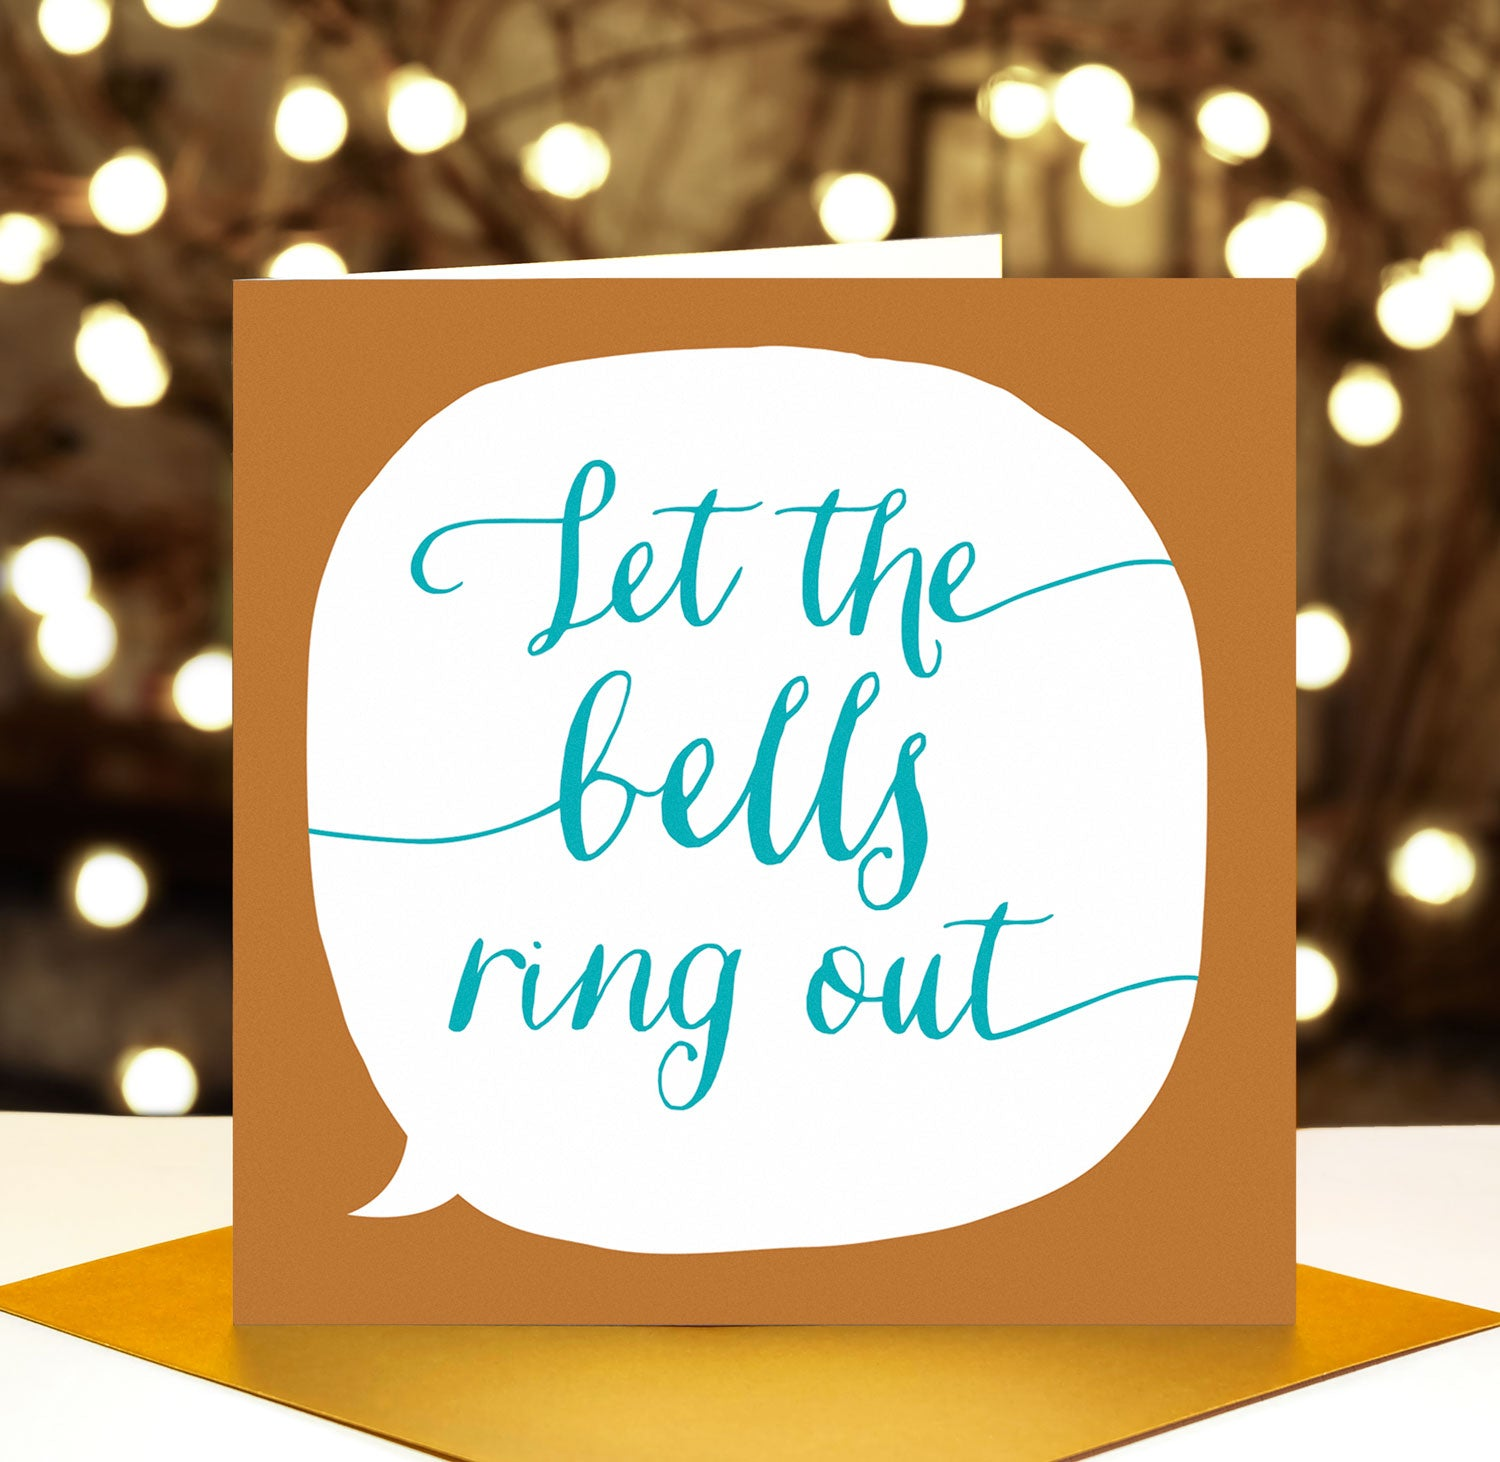 let the bells ring out song lyrics christmas card paper plane